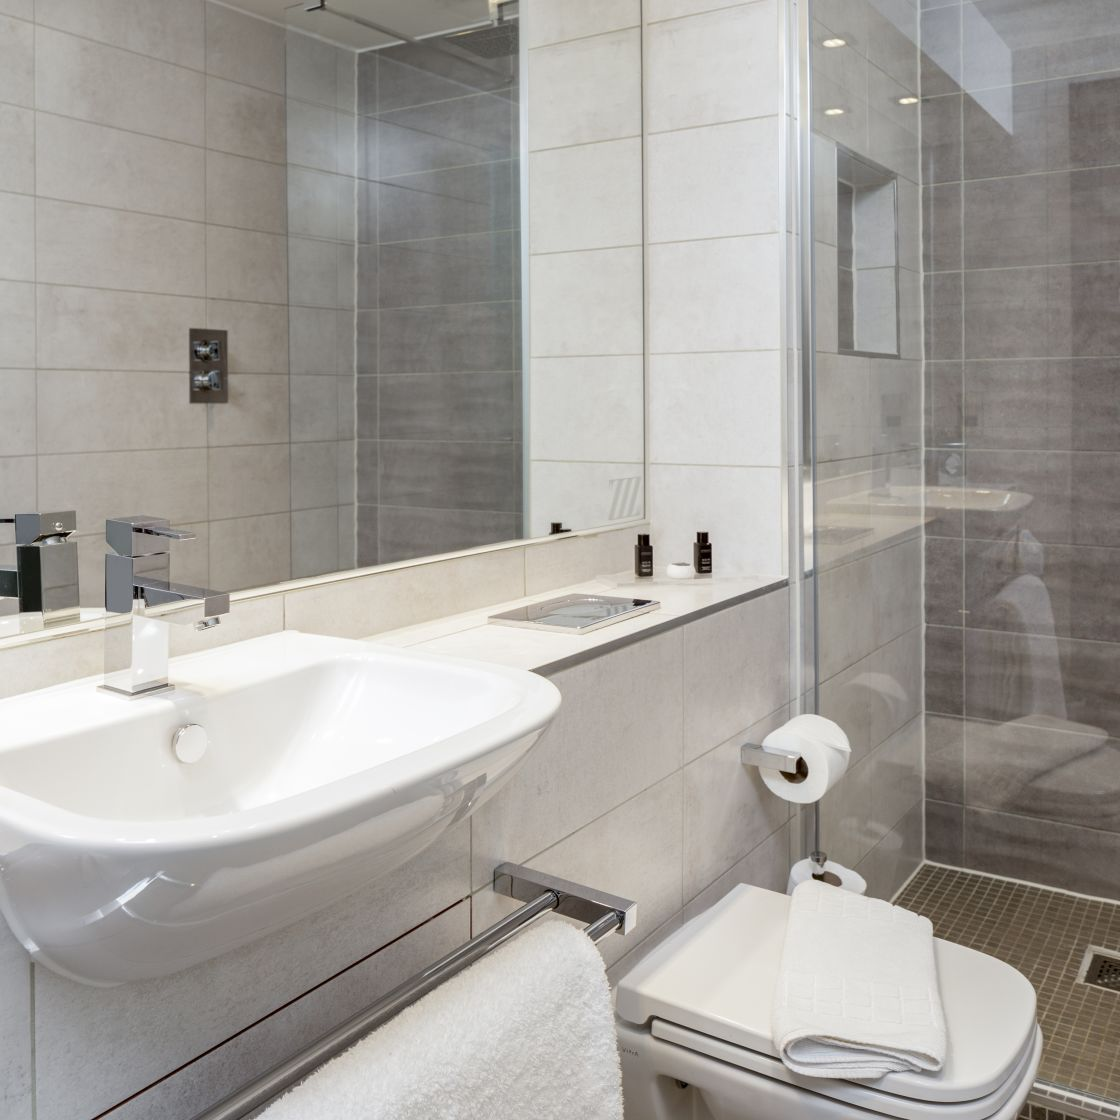 En-suite bathroom with rainfall shower. Student Accommodation in Chester